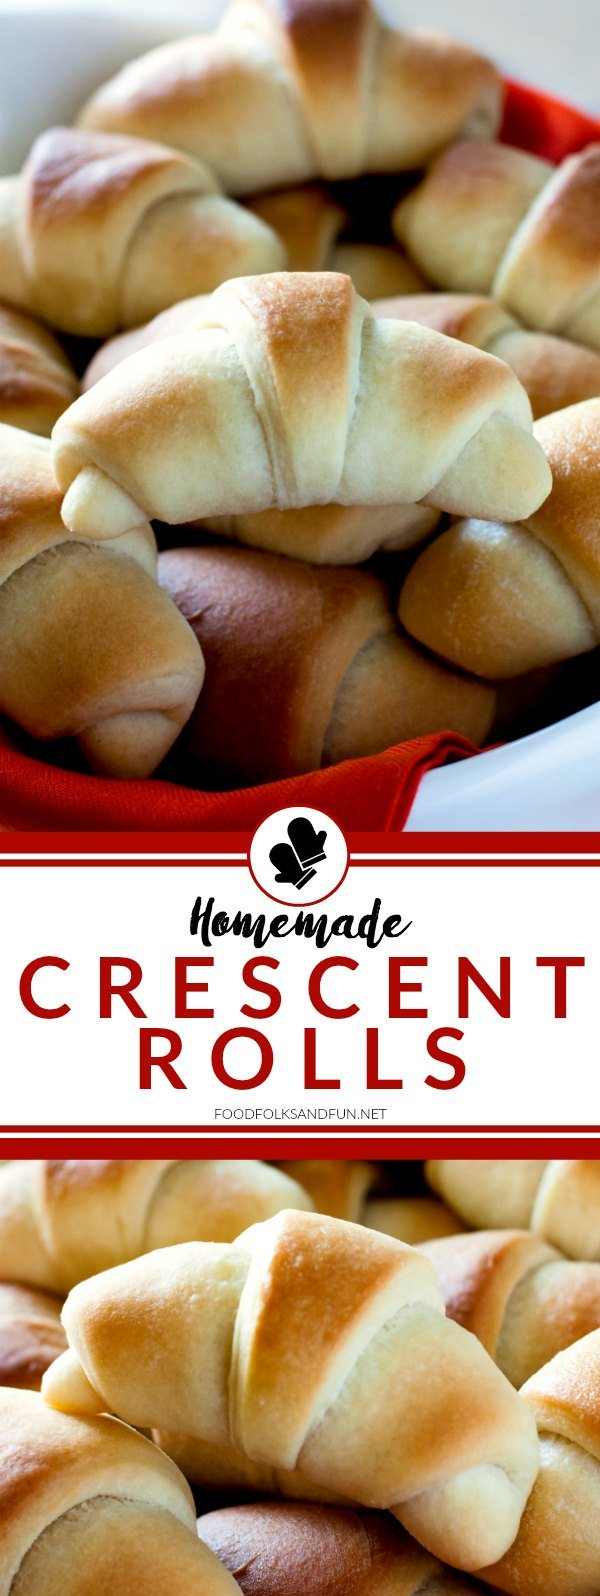 These homemade, golden Crescent Rolls are always the star of any holiday feast. They're tender, buttery, and extraordinary! via @foodfolksandfun